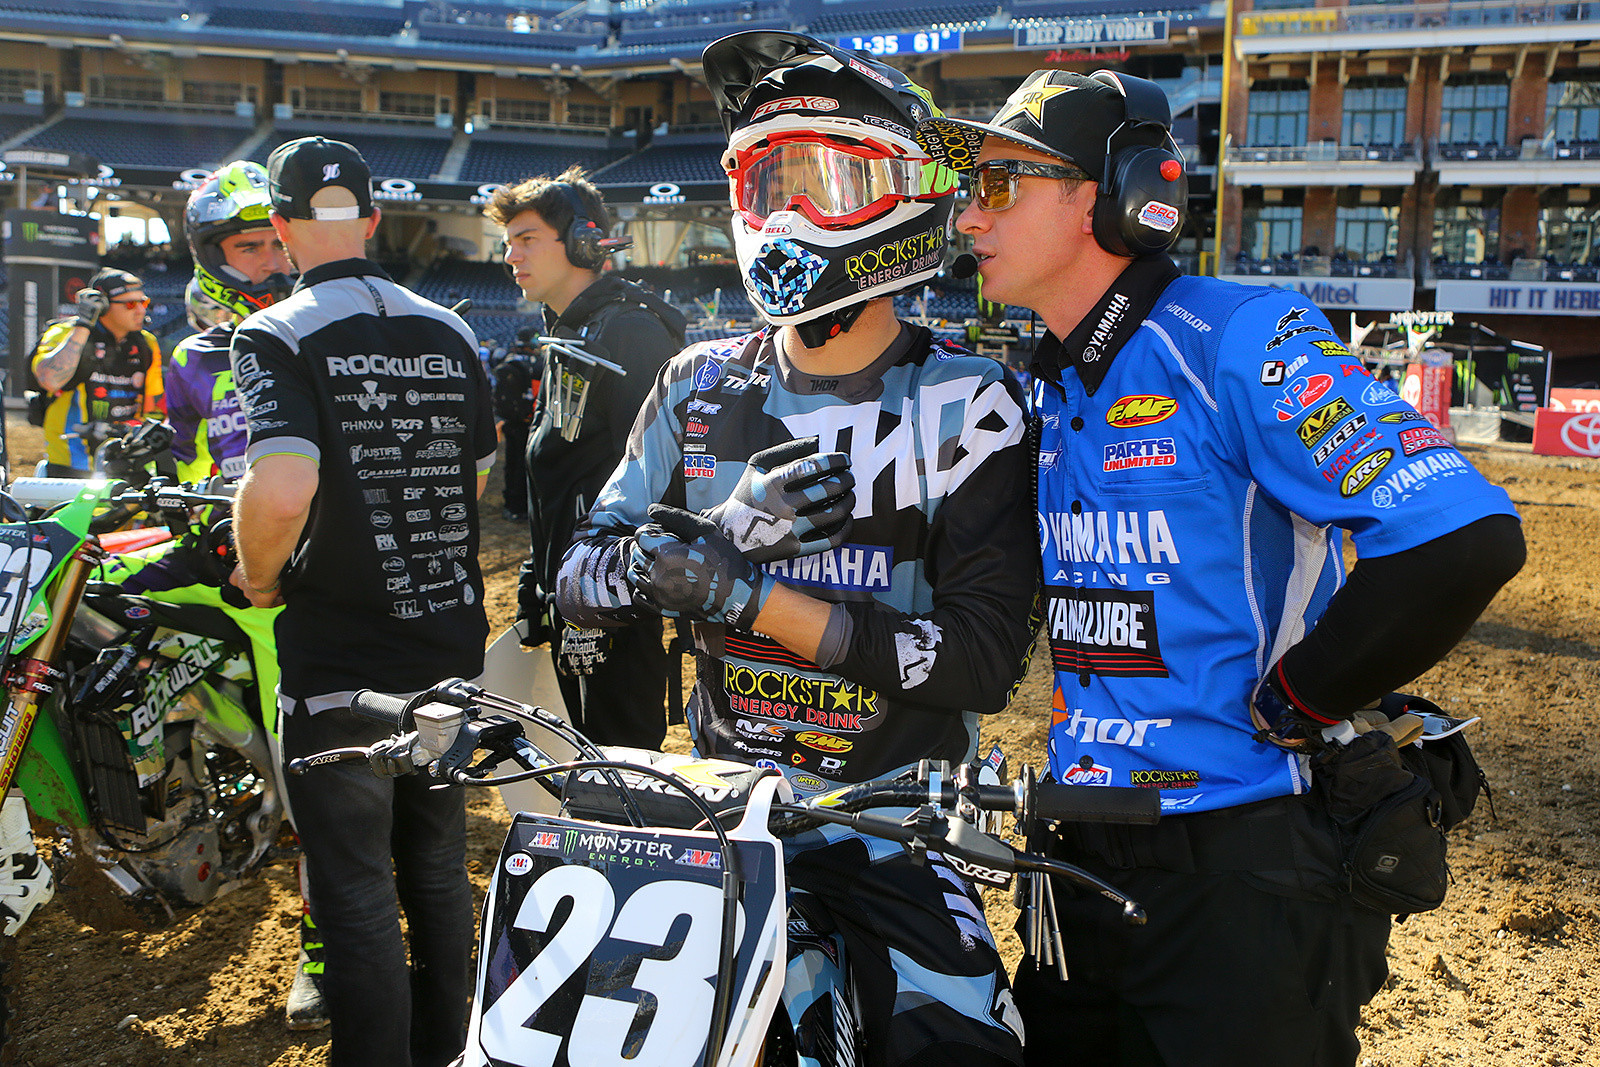 Aaron Plessinger and Billy Hartle - Vital MX Pit Bits: San Diego - Motocross Pictures - Vital MX